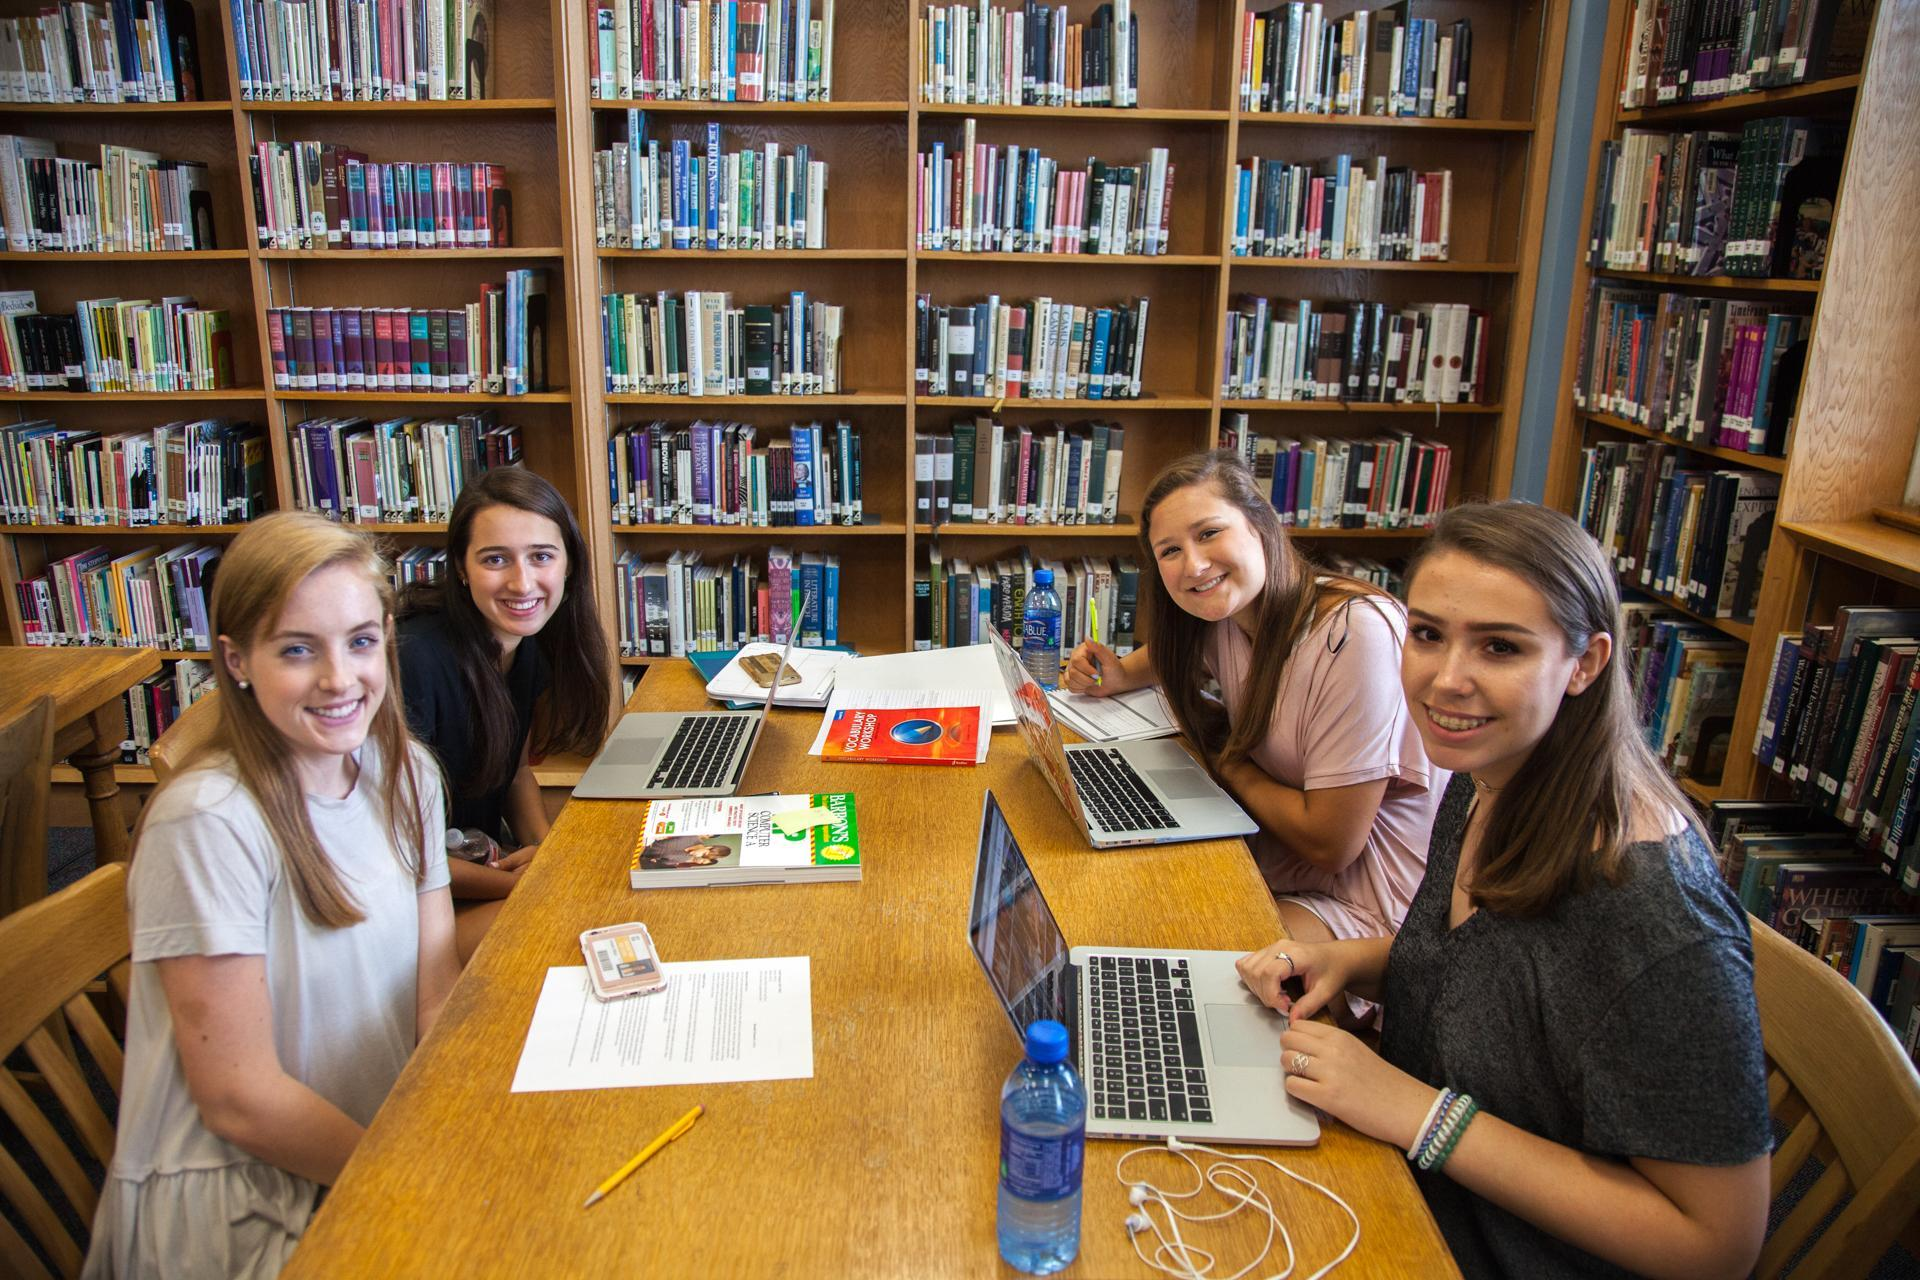 Four HPHS students gather around their laptops in the library to work on classroom assignments.